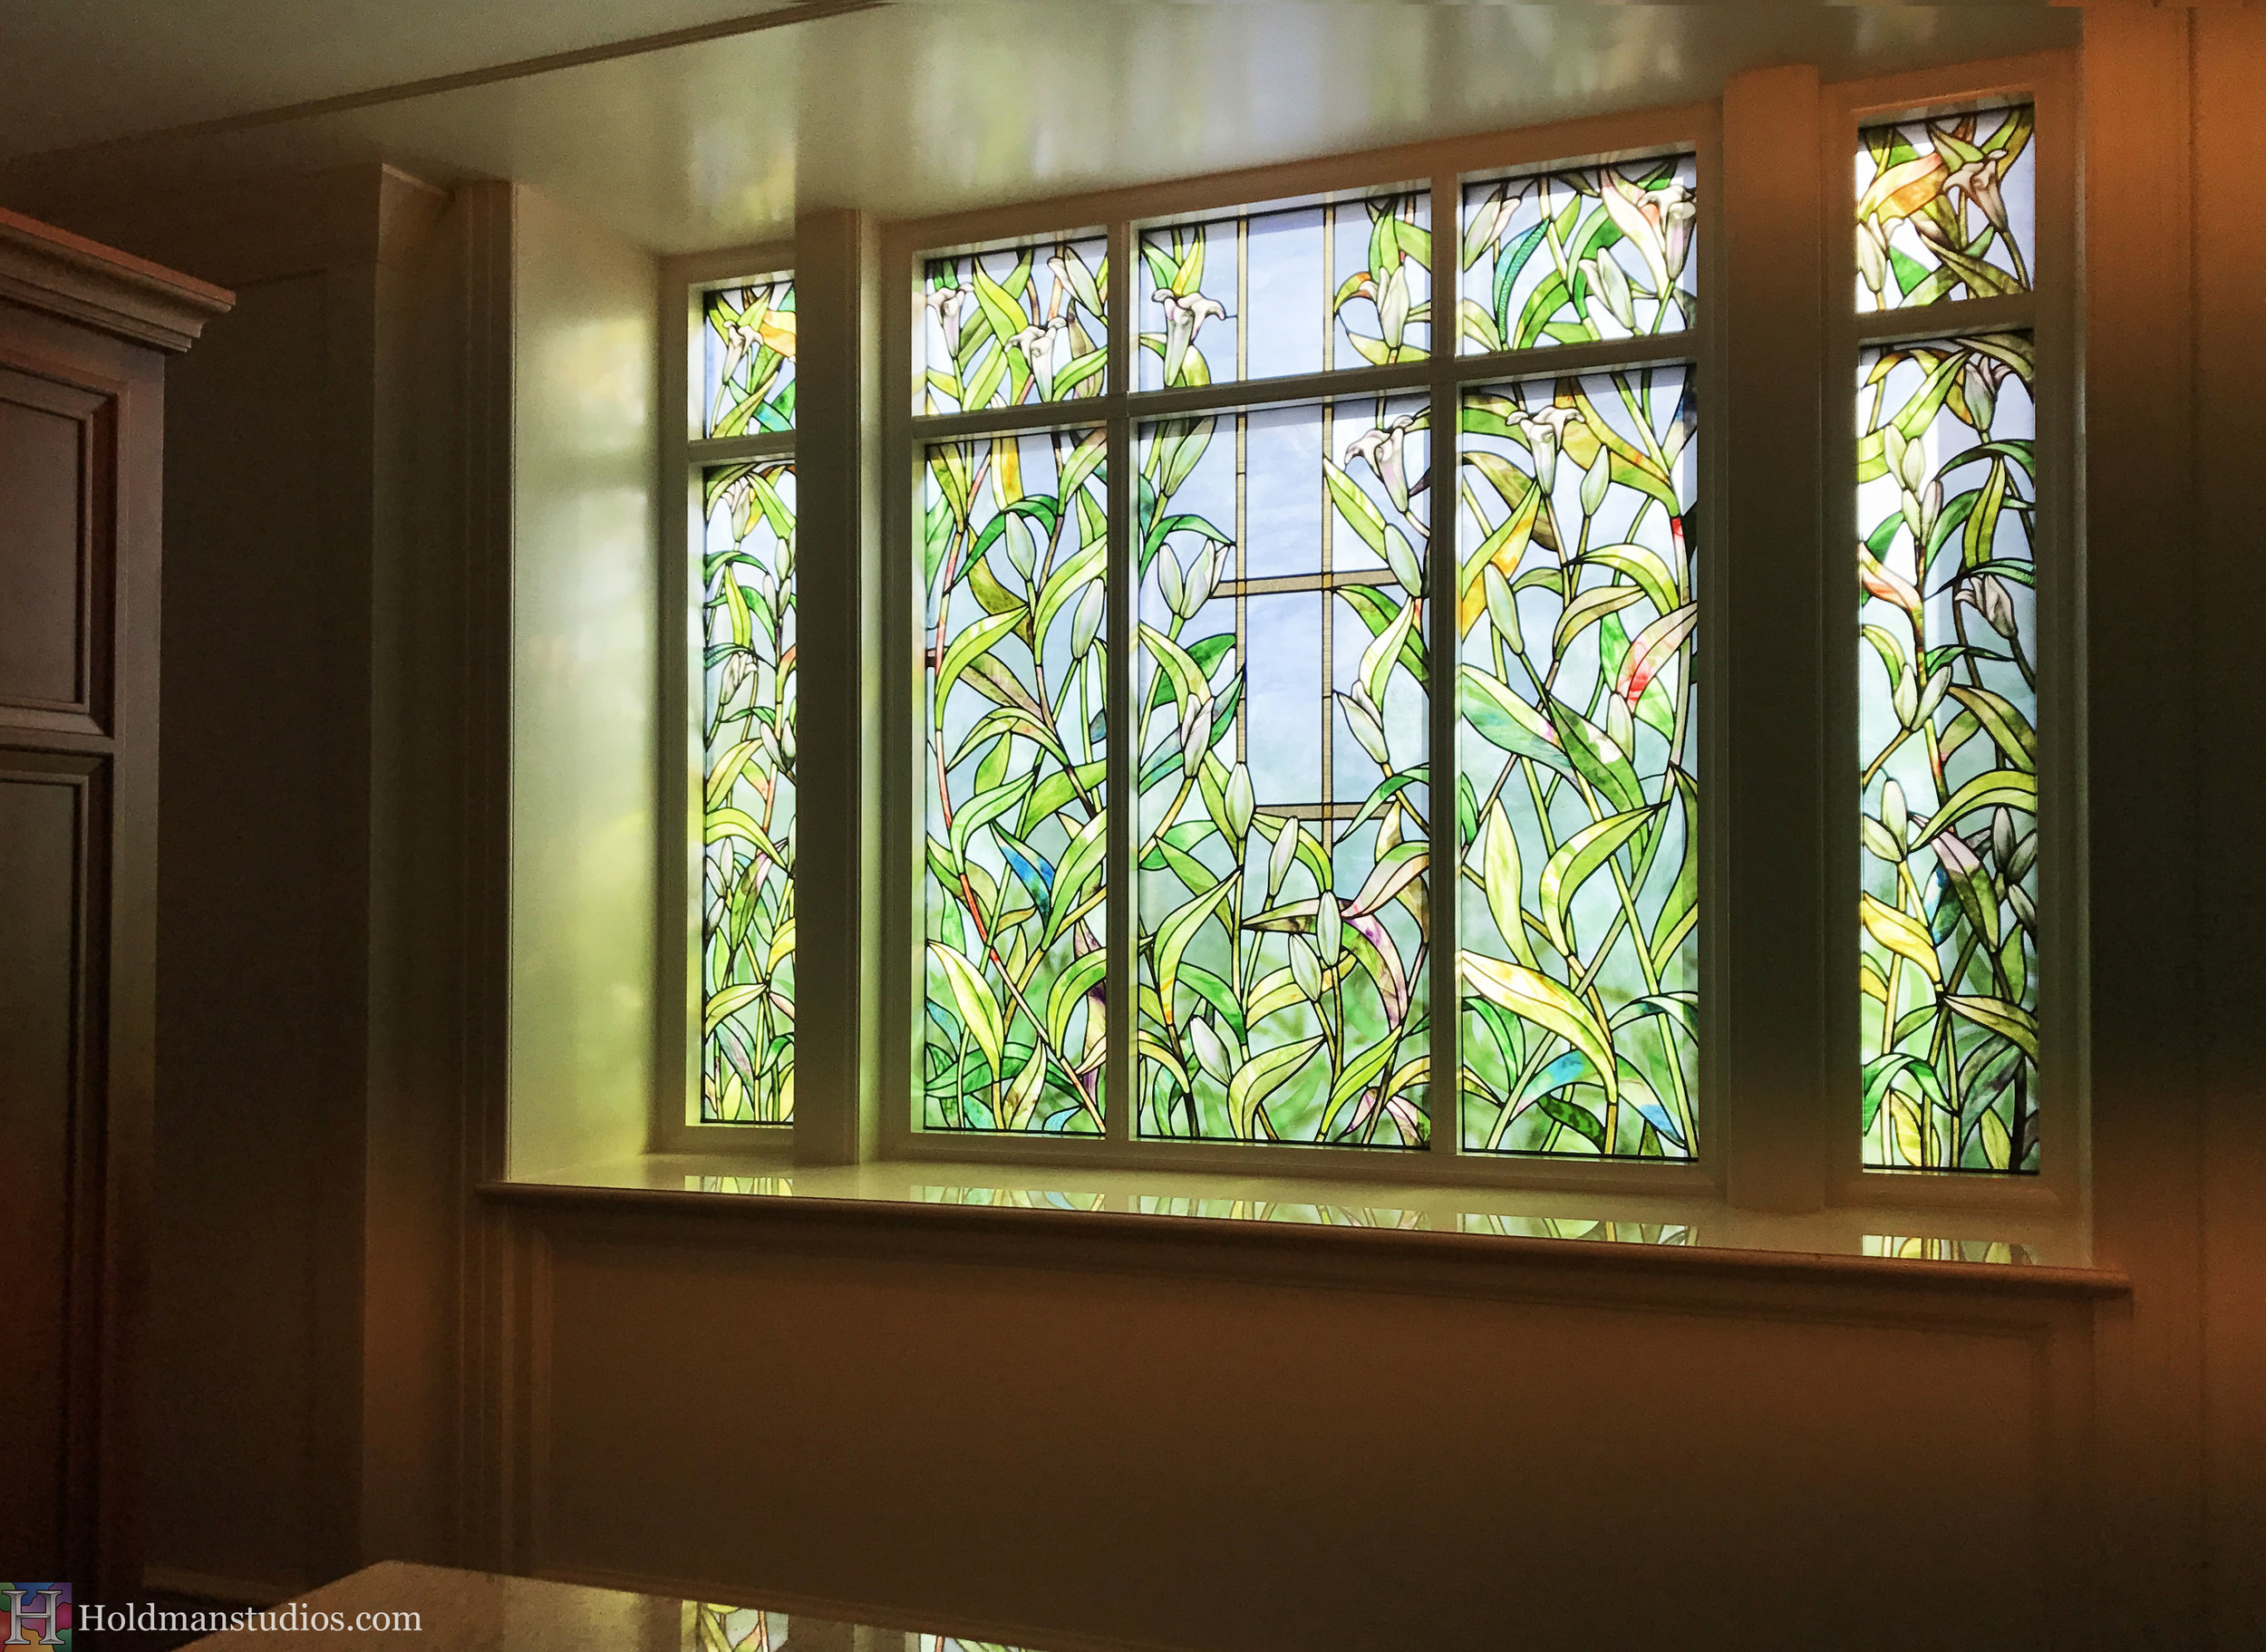 Holdman-Studios-Stained-Glass-Paris-LDS-Temple-Madonna-Lily-Flowers-Leaves-Window-Sideview.jpg